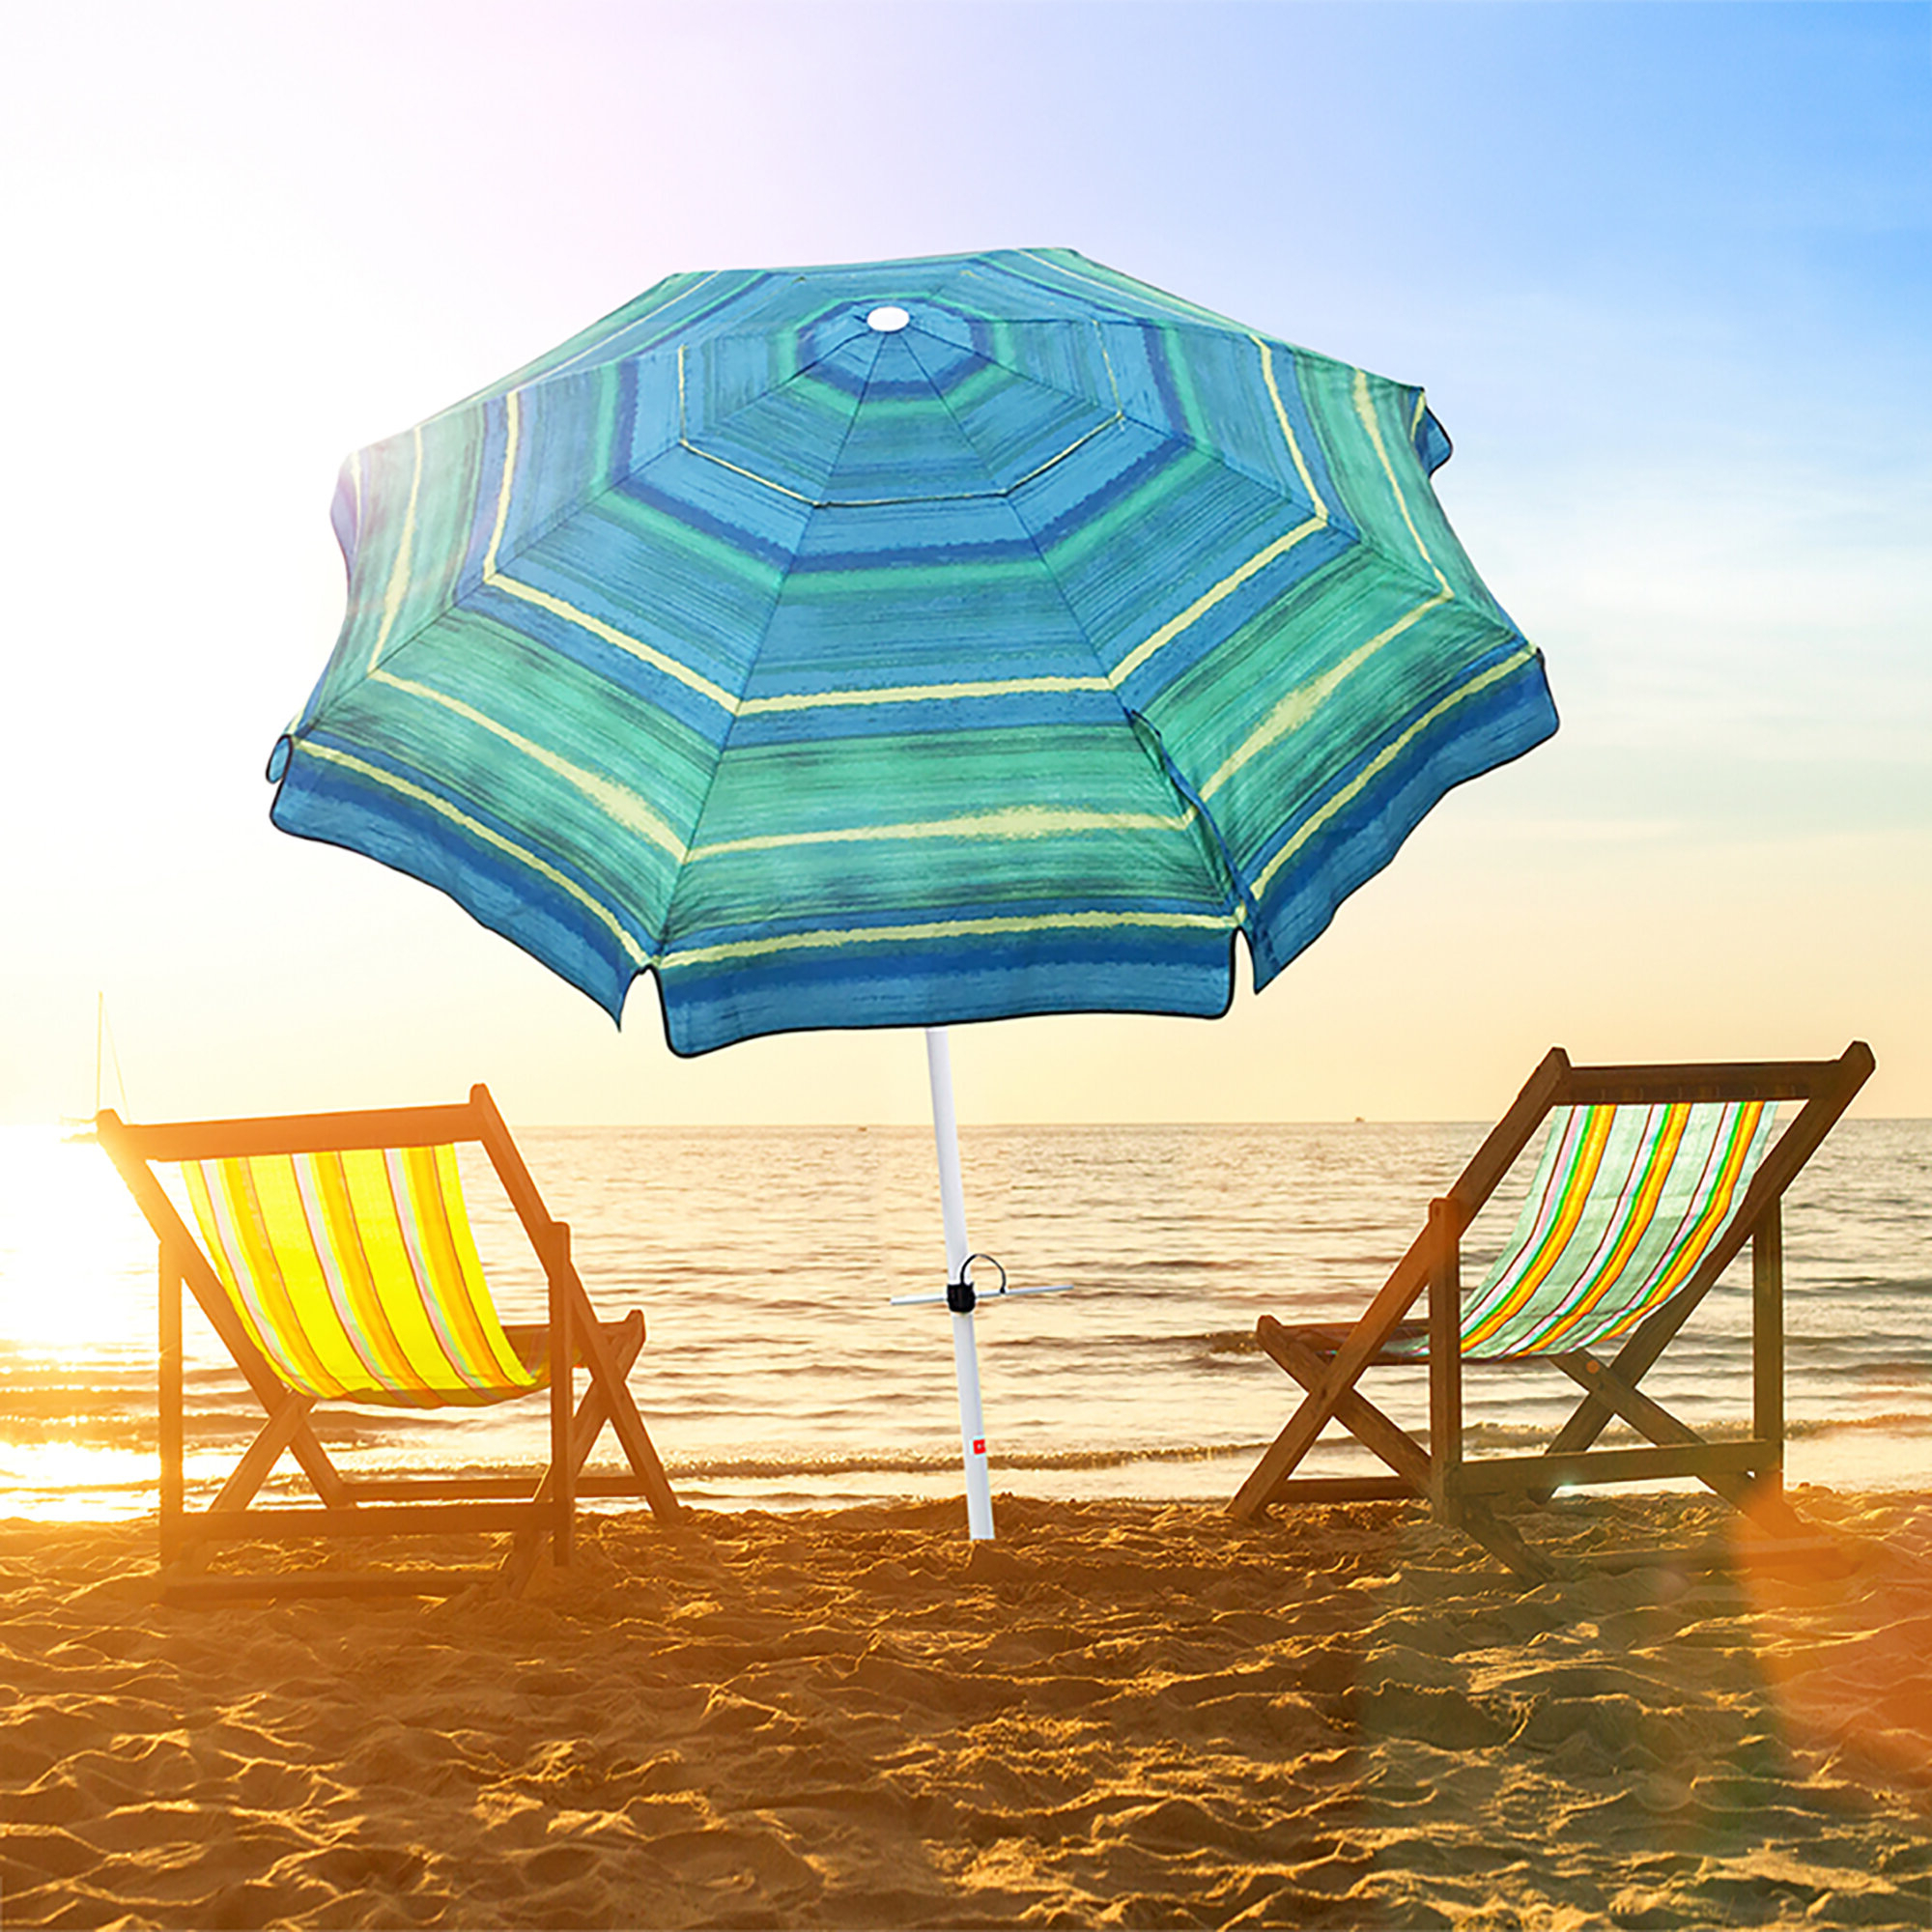 Well Liked Margaritaville Green And Blue Striped Beach With Built In Sand Anchor Umbrellas Pertaining To Newington 7' Beach Umbrella (View 14 of 20)